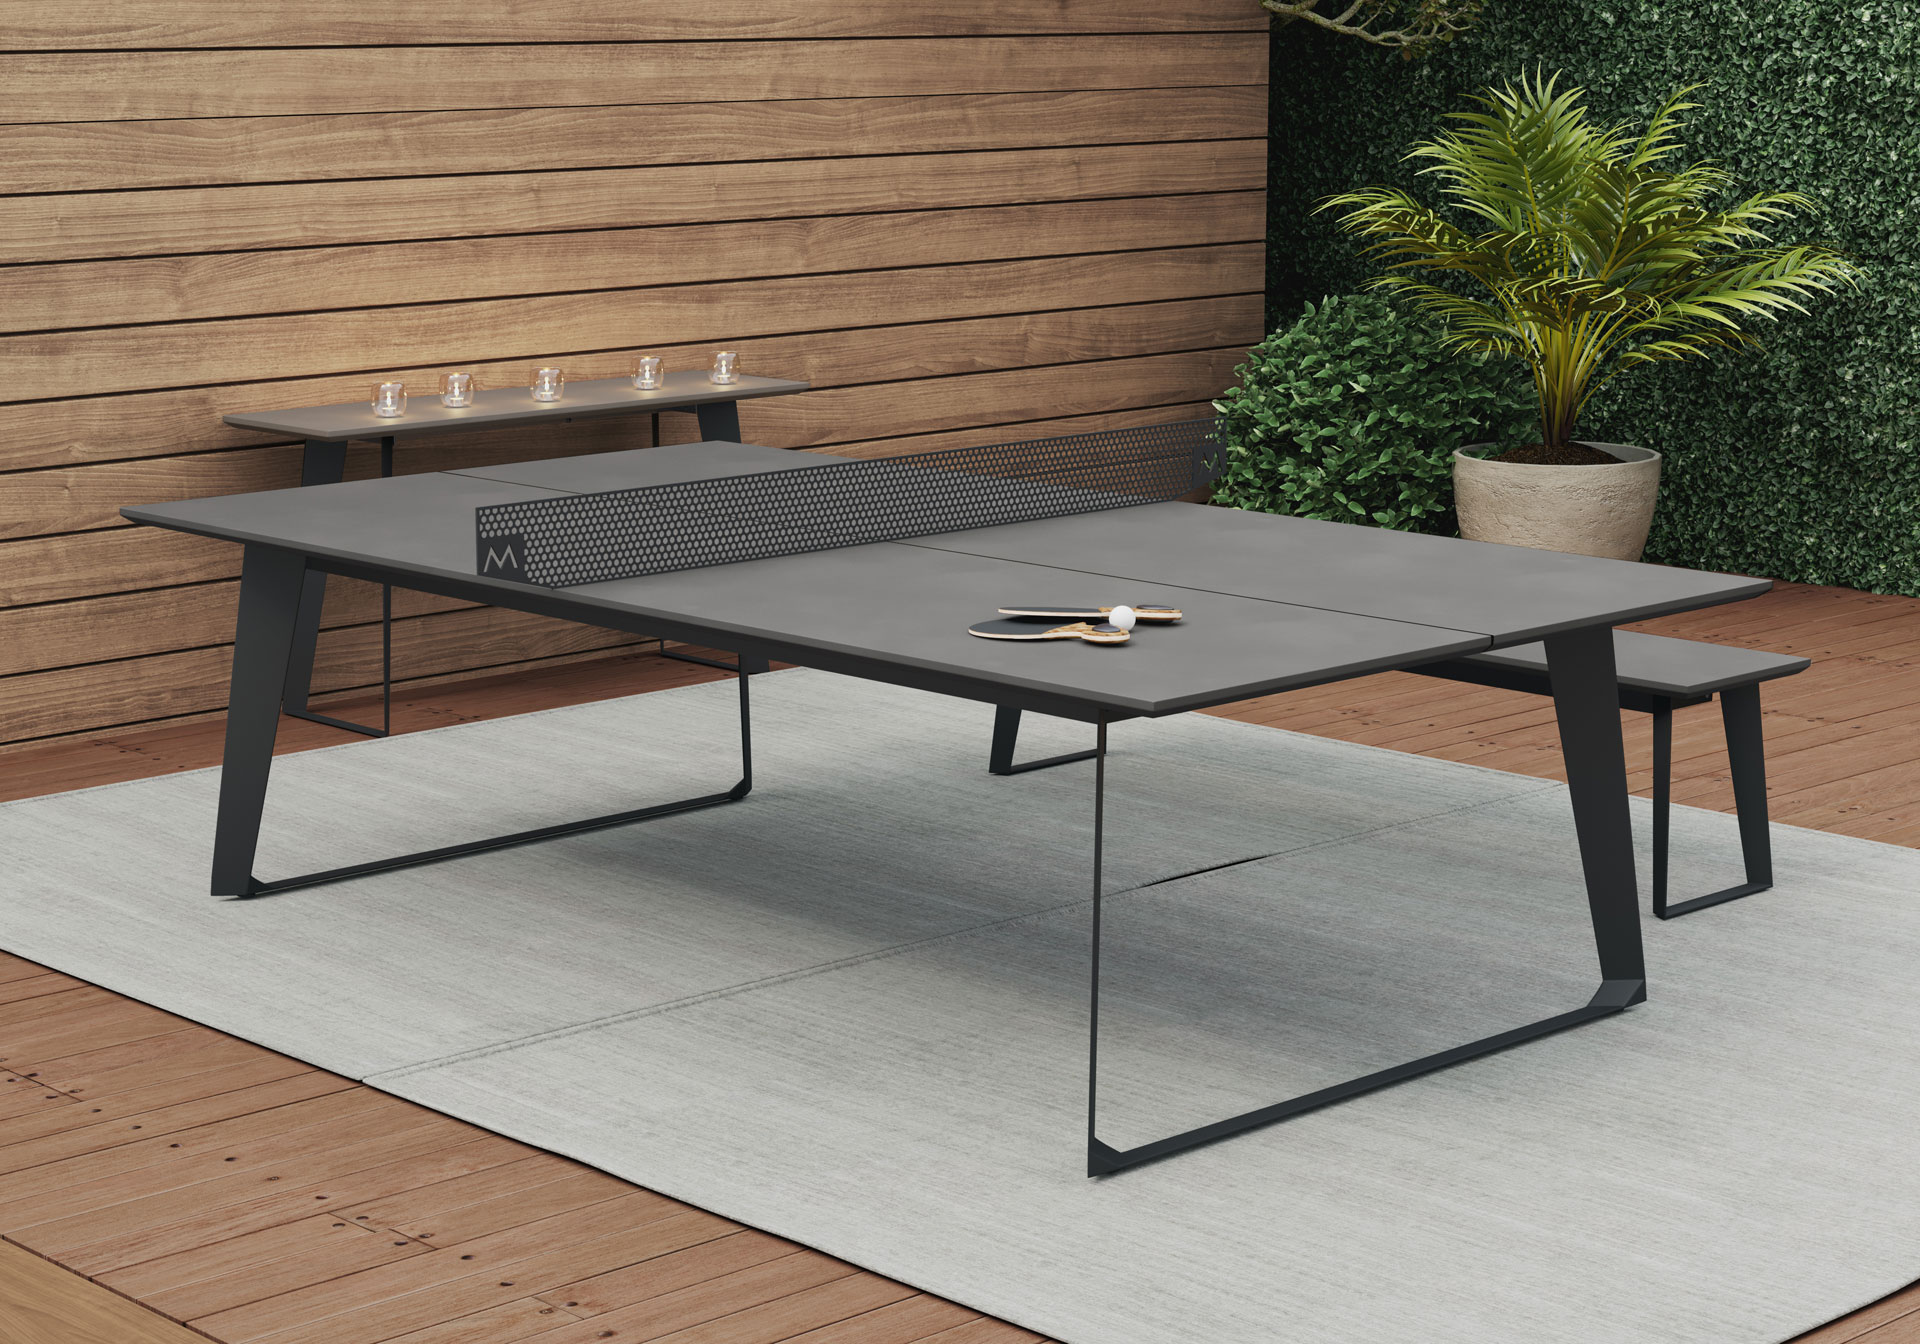 Modloft Amsterdam Outdoor Ping Pong Table DE GHT PPTBLC OD ficial